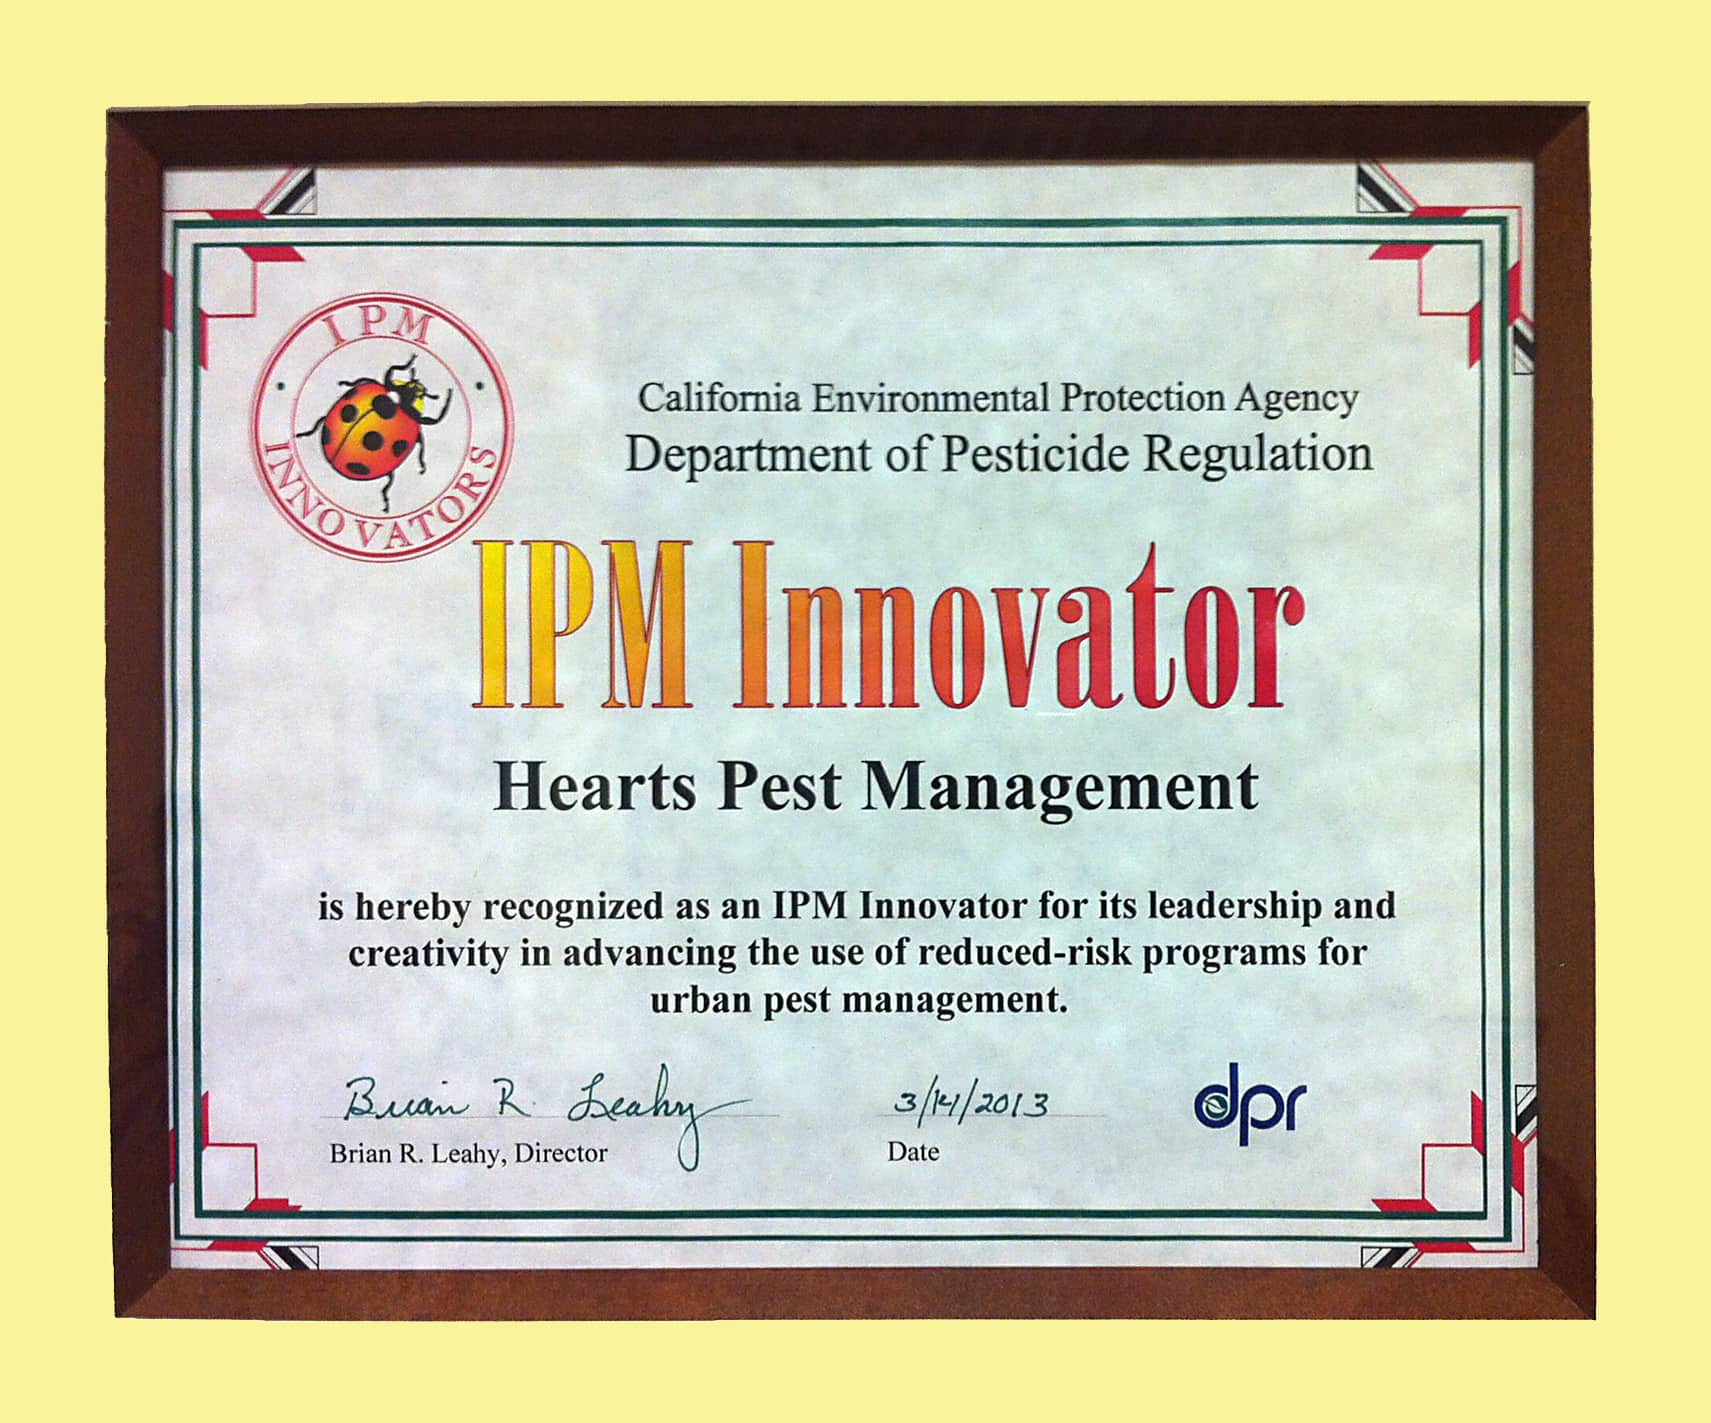 Hearts Pest Management is recognized by California's Environmental Protection Agency as an innovator in Integrated Pest Management.